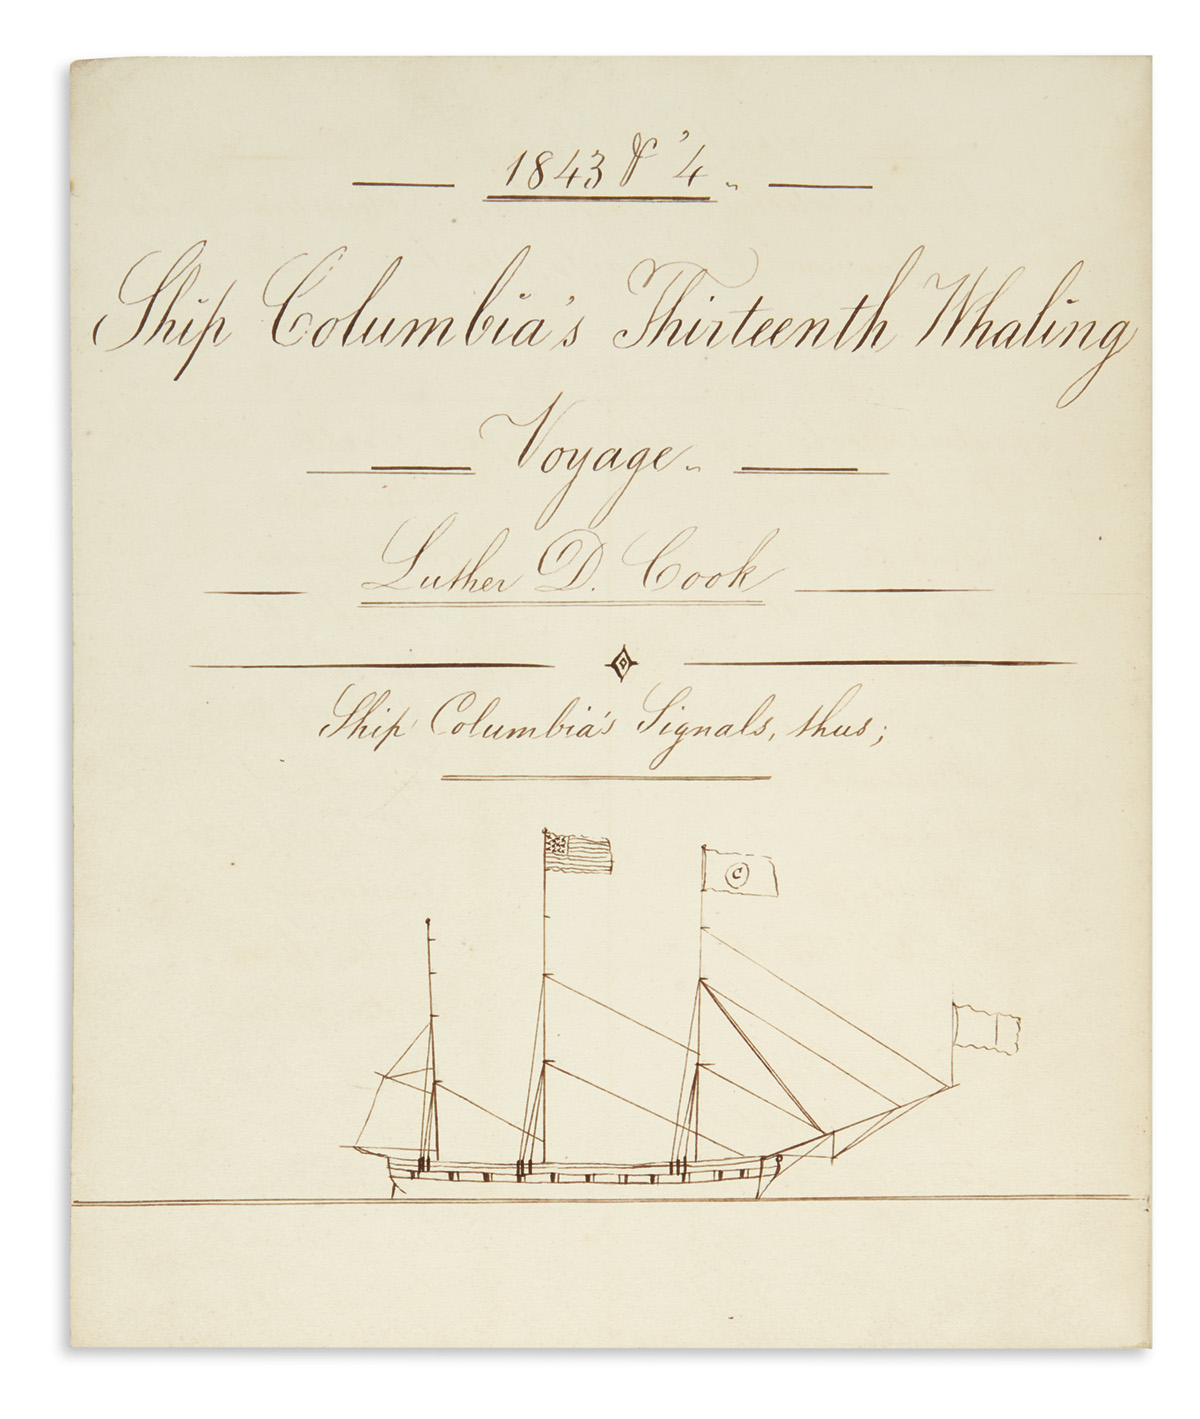 (WHALING)-Record-books-of-Long-Island-whaling-merchant-Luthe